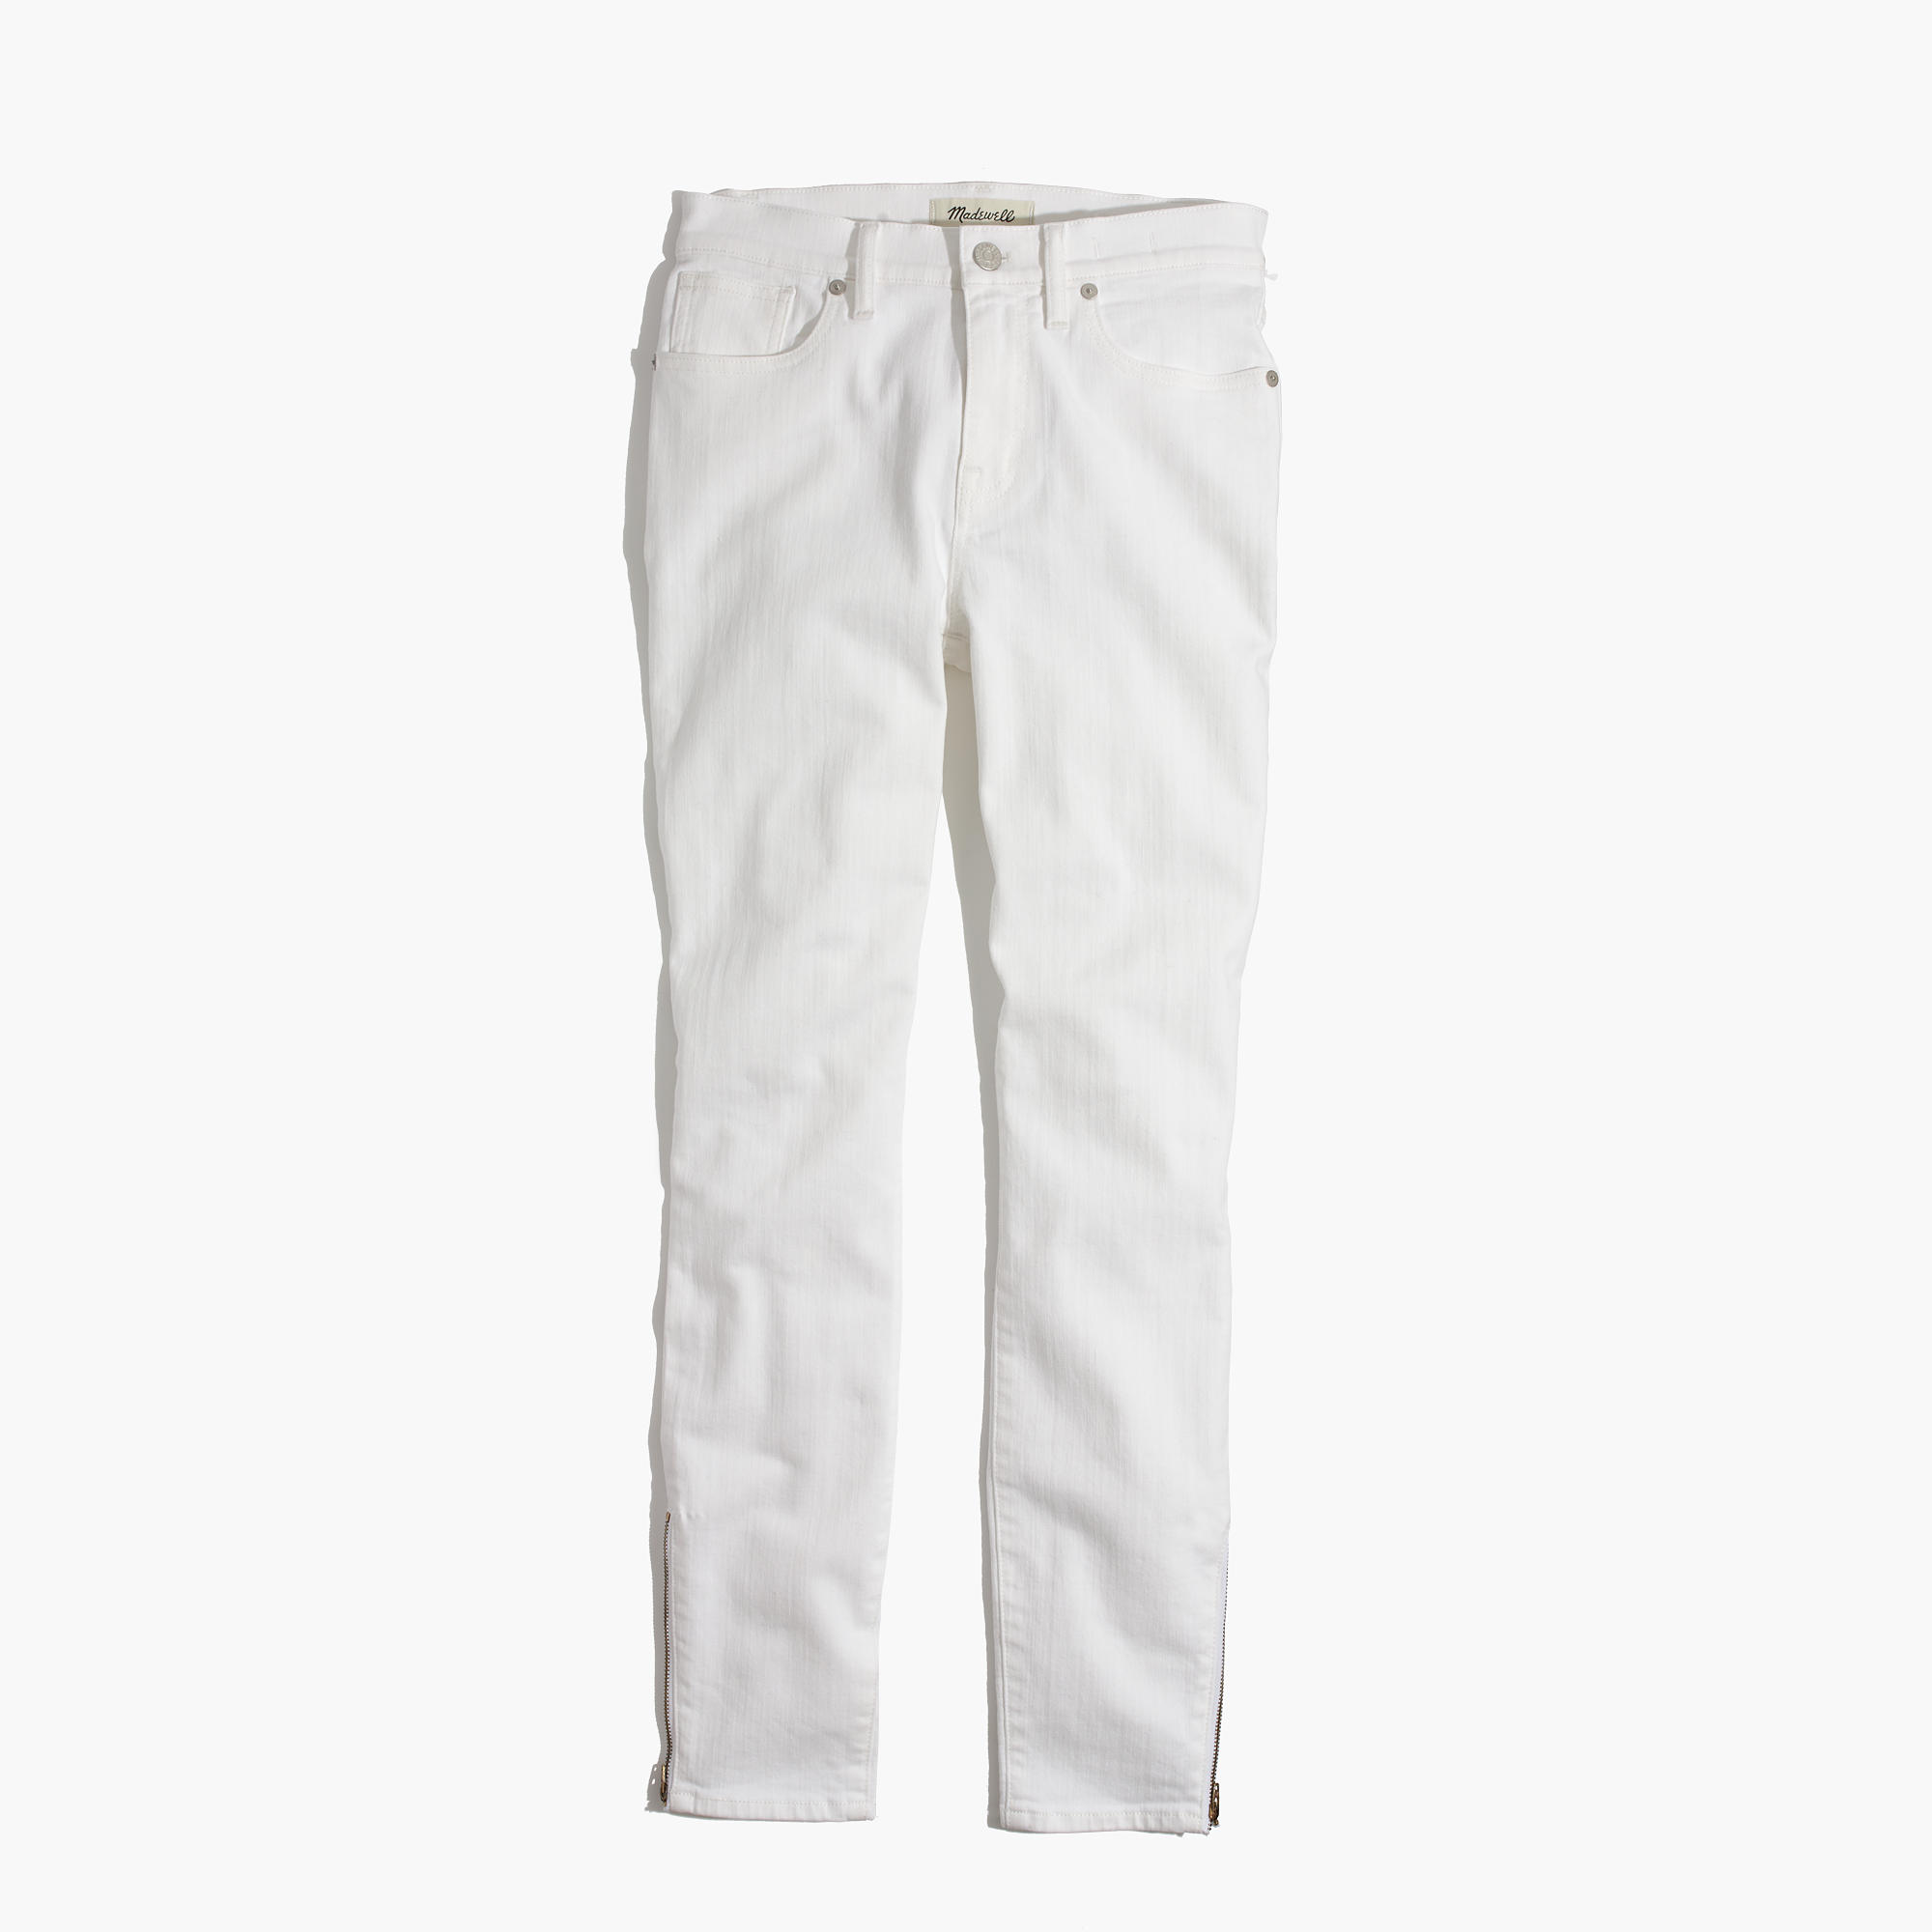 """Madewell et Sézane® 9"""" High-Rise Skinny Jeans in White: Ankle-Zip ..."""